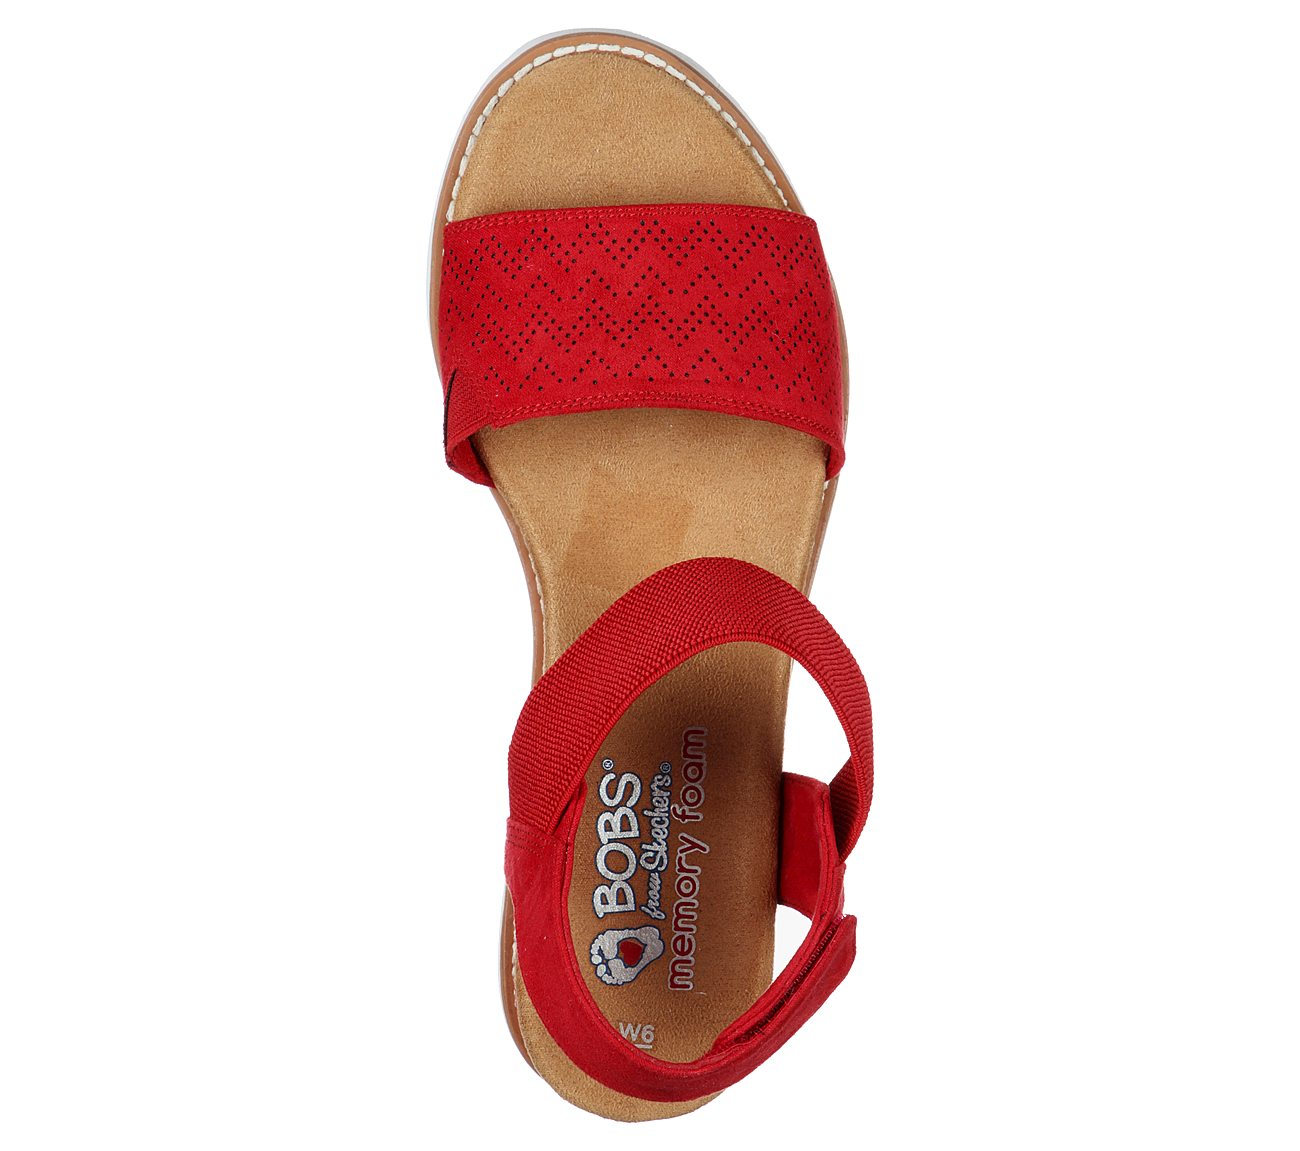 c5a70777f5a1 Buy SKECHERS BOBS Desert Kiss SKECHERS Bobs Shoes only £45.00